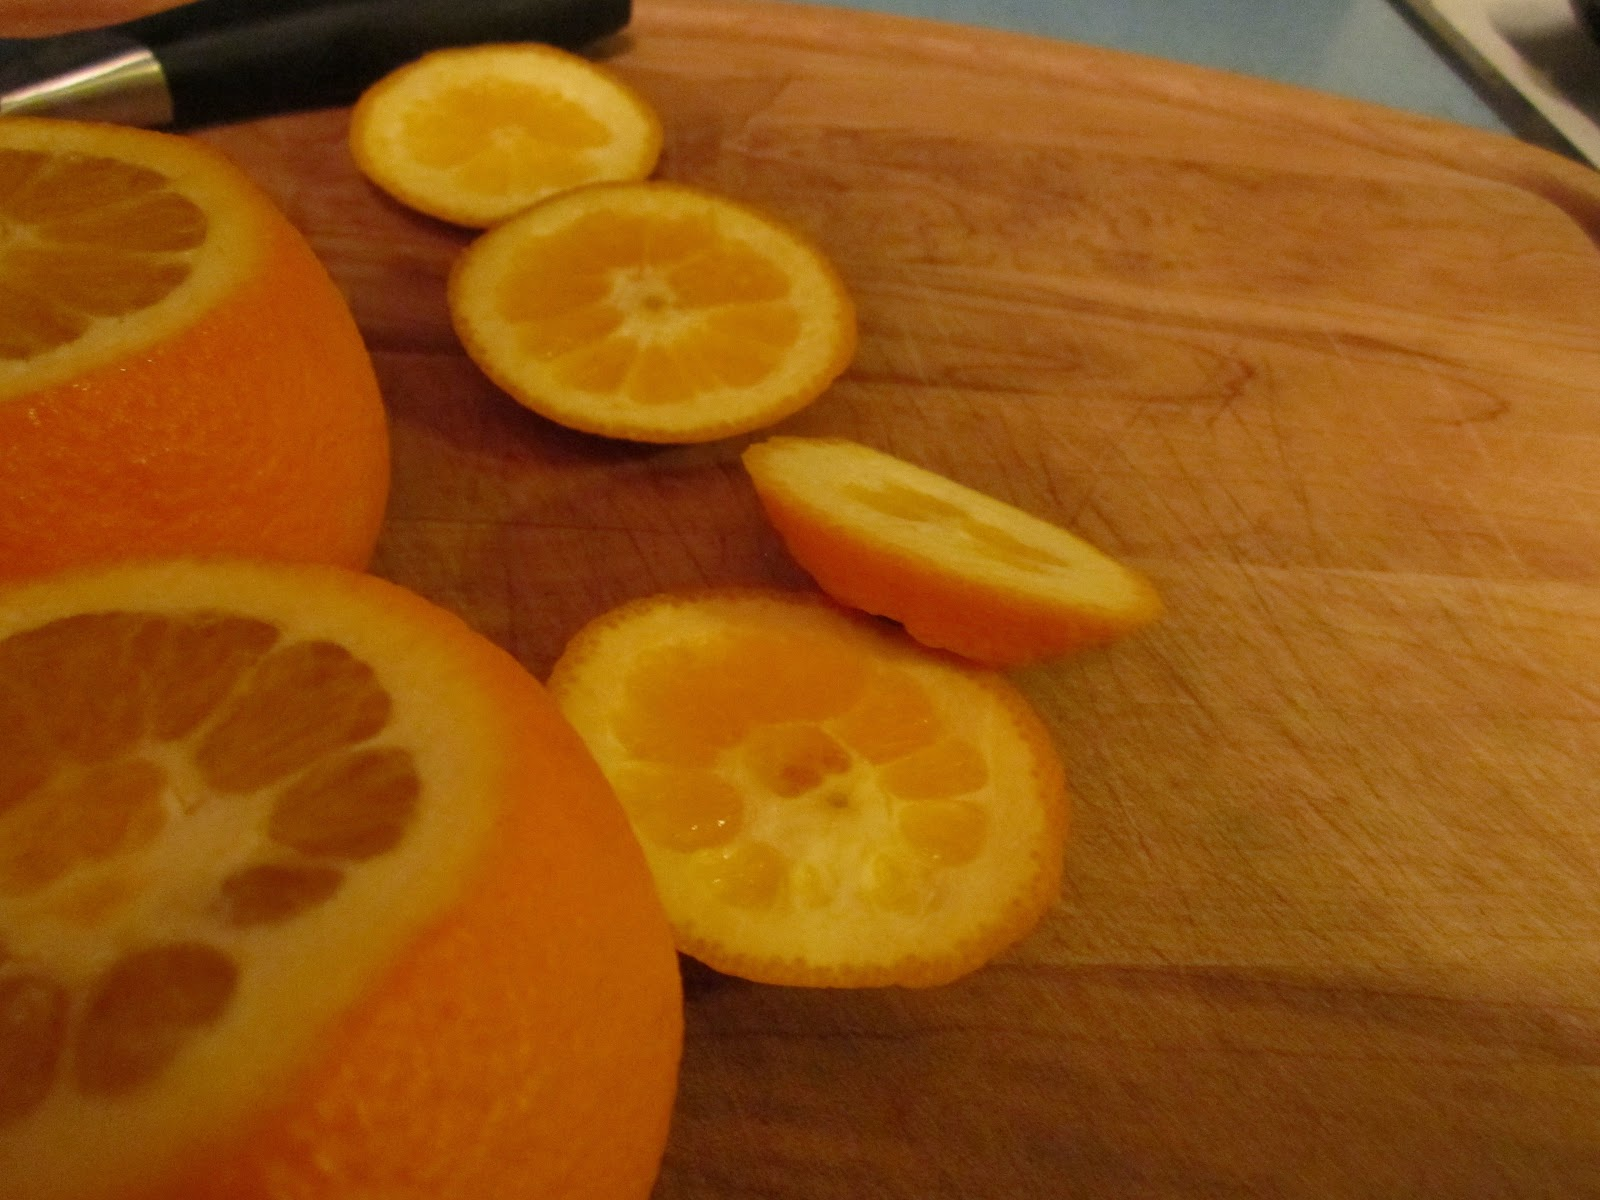 Wildcat Cooking: Orange-Scented Olive Oil Cake